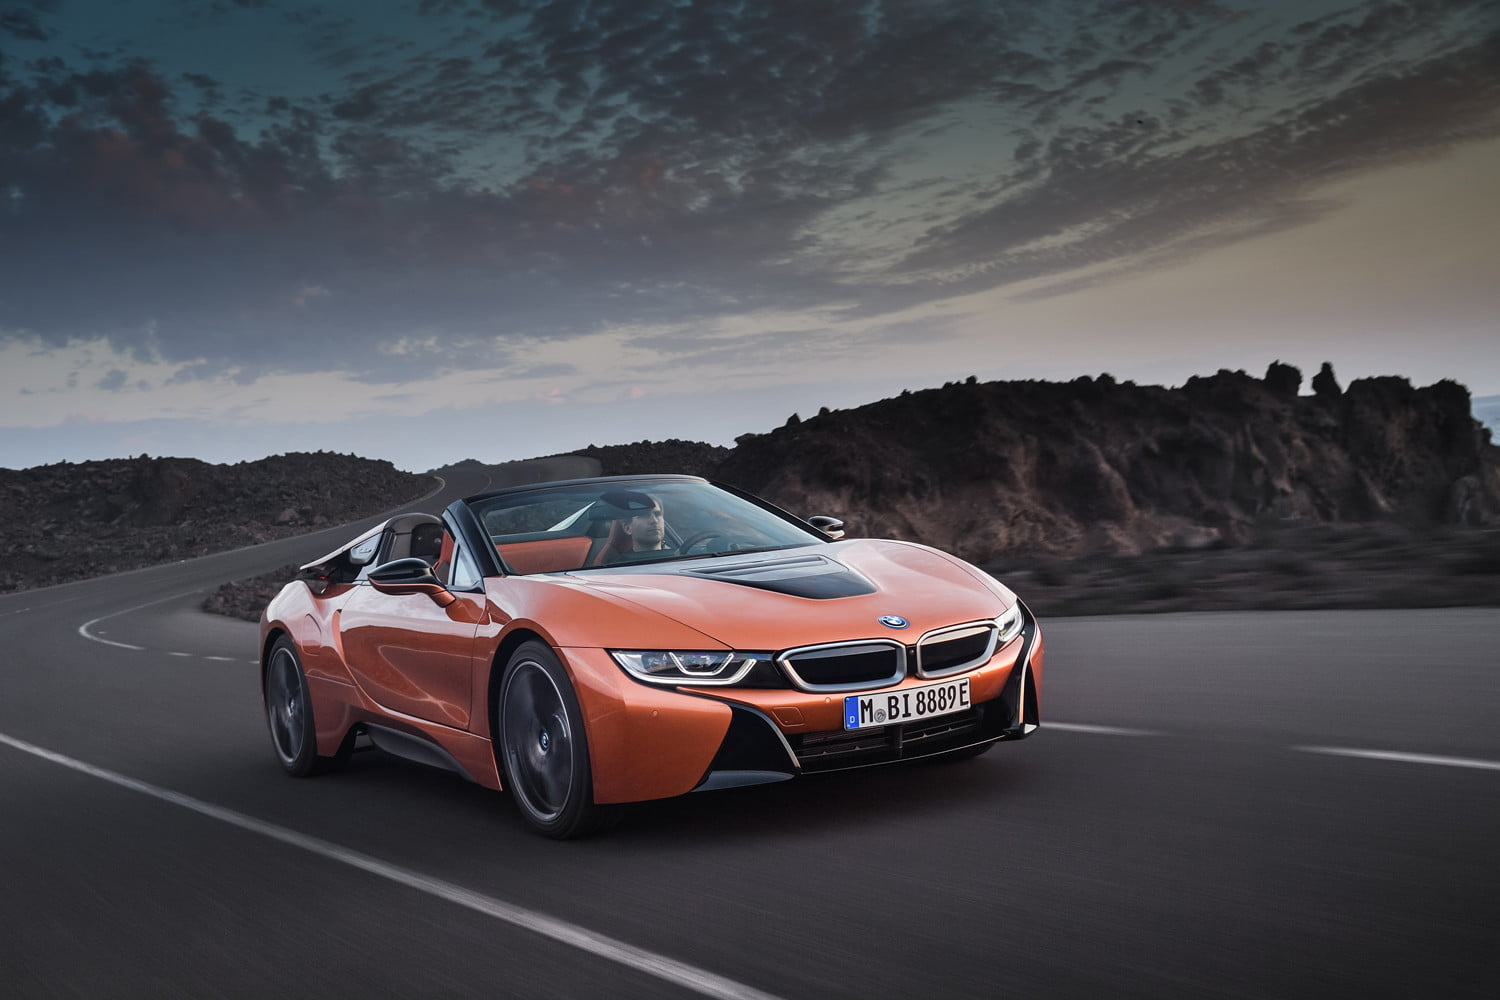 New Bmw Hybrid Supercar Could Replace I8 Report Says